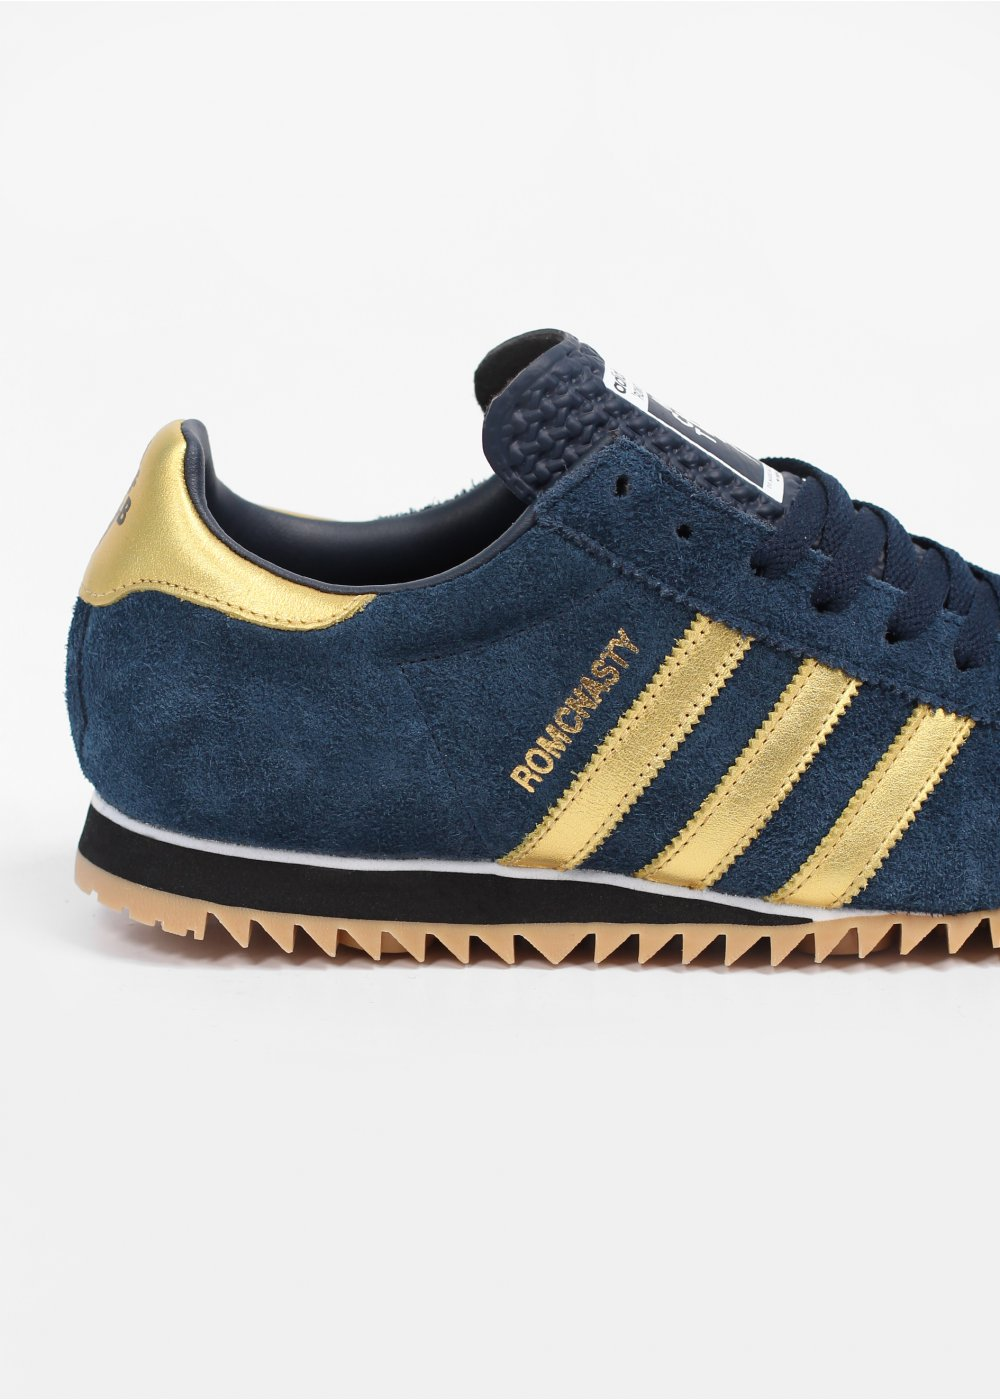 Adidas Originals Originals Top Ten Low Sneaker In Black: Adidas Originals X MARK MCNAIRY X KZK ROMCNASTY 84-LAB